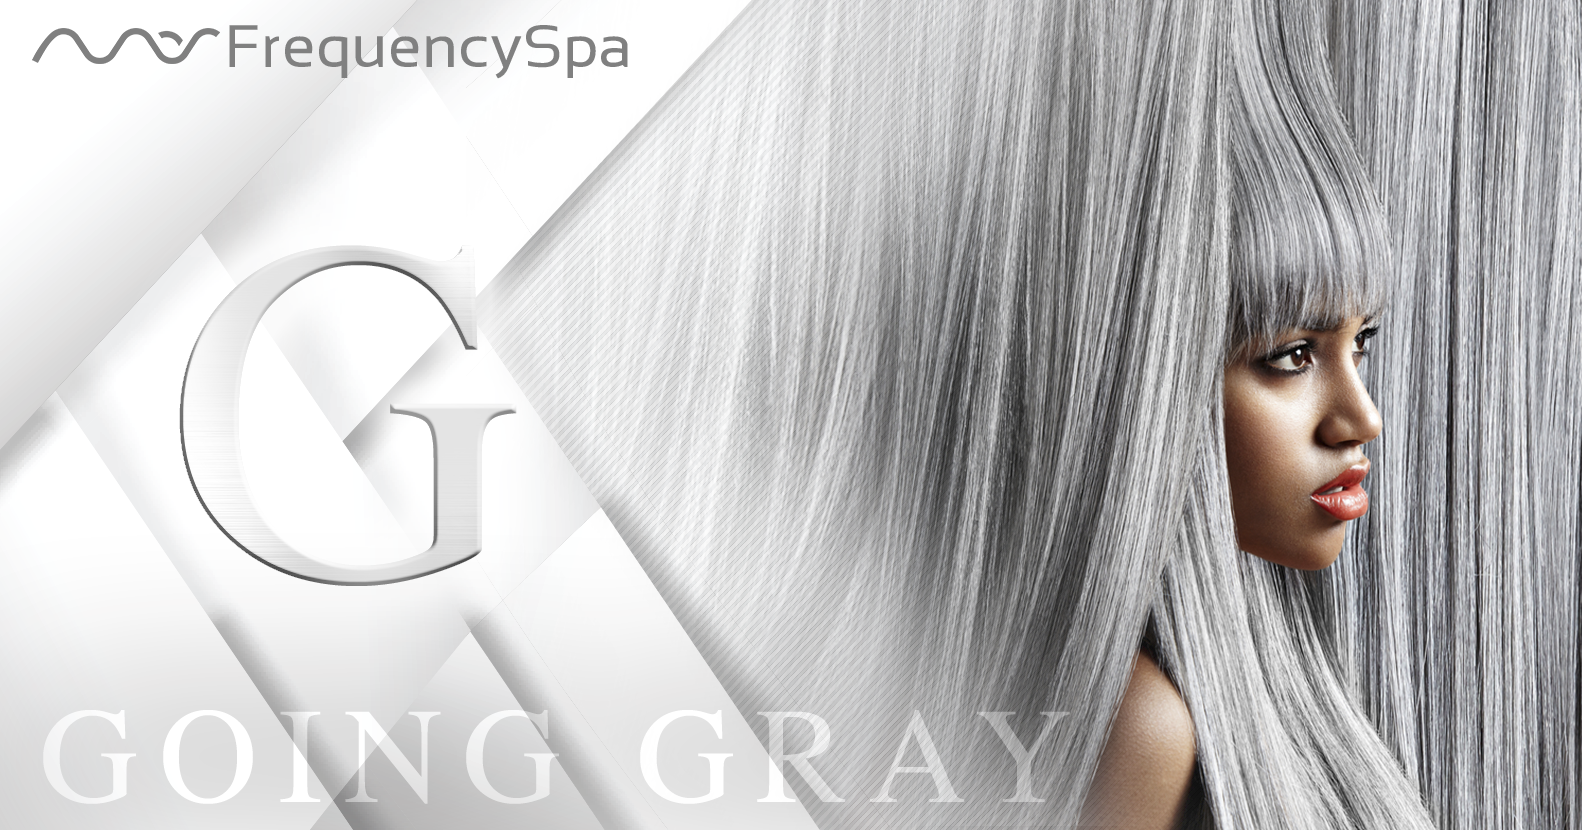 mas-sajady-live-frequency-spa-going-gray.png